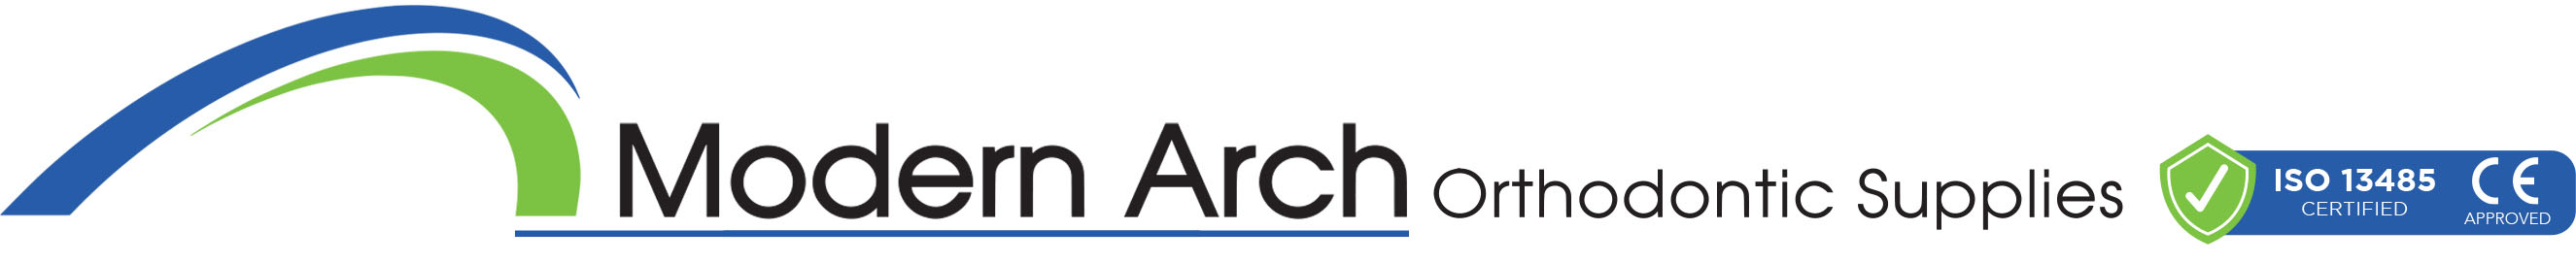 Orthodontic Supplies - Modern Arches Logo